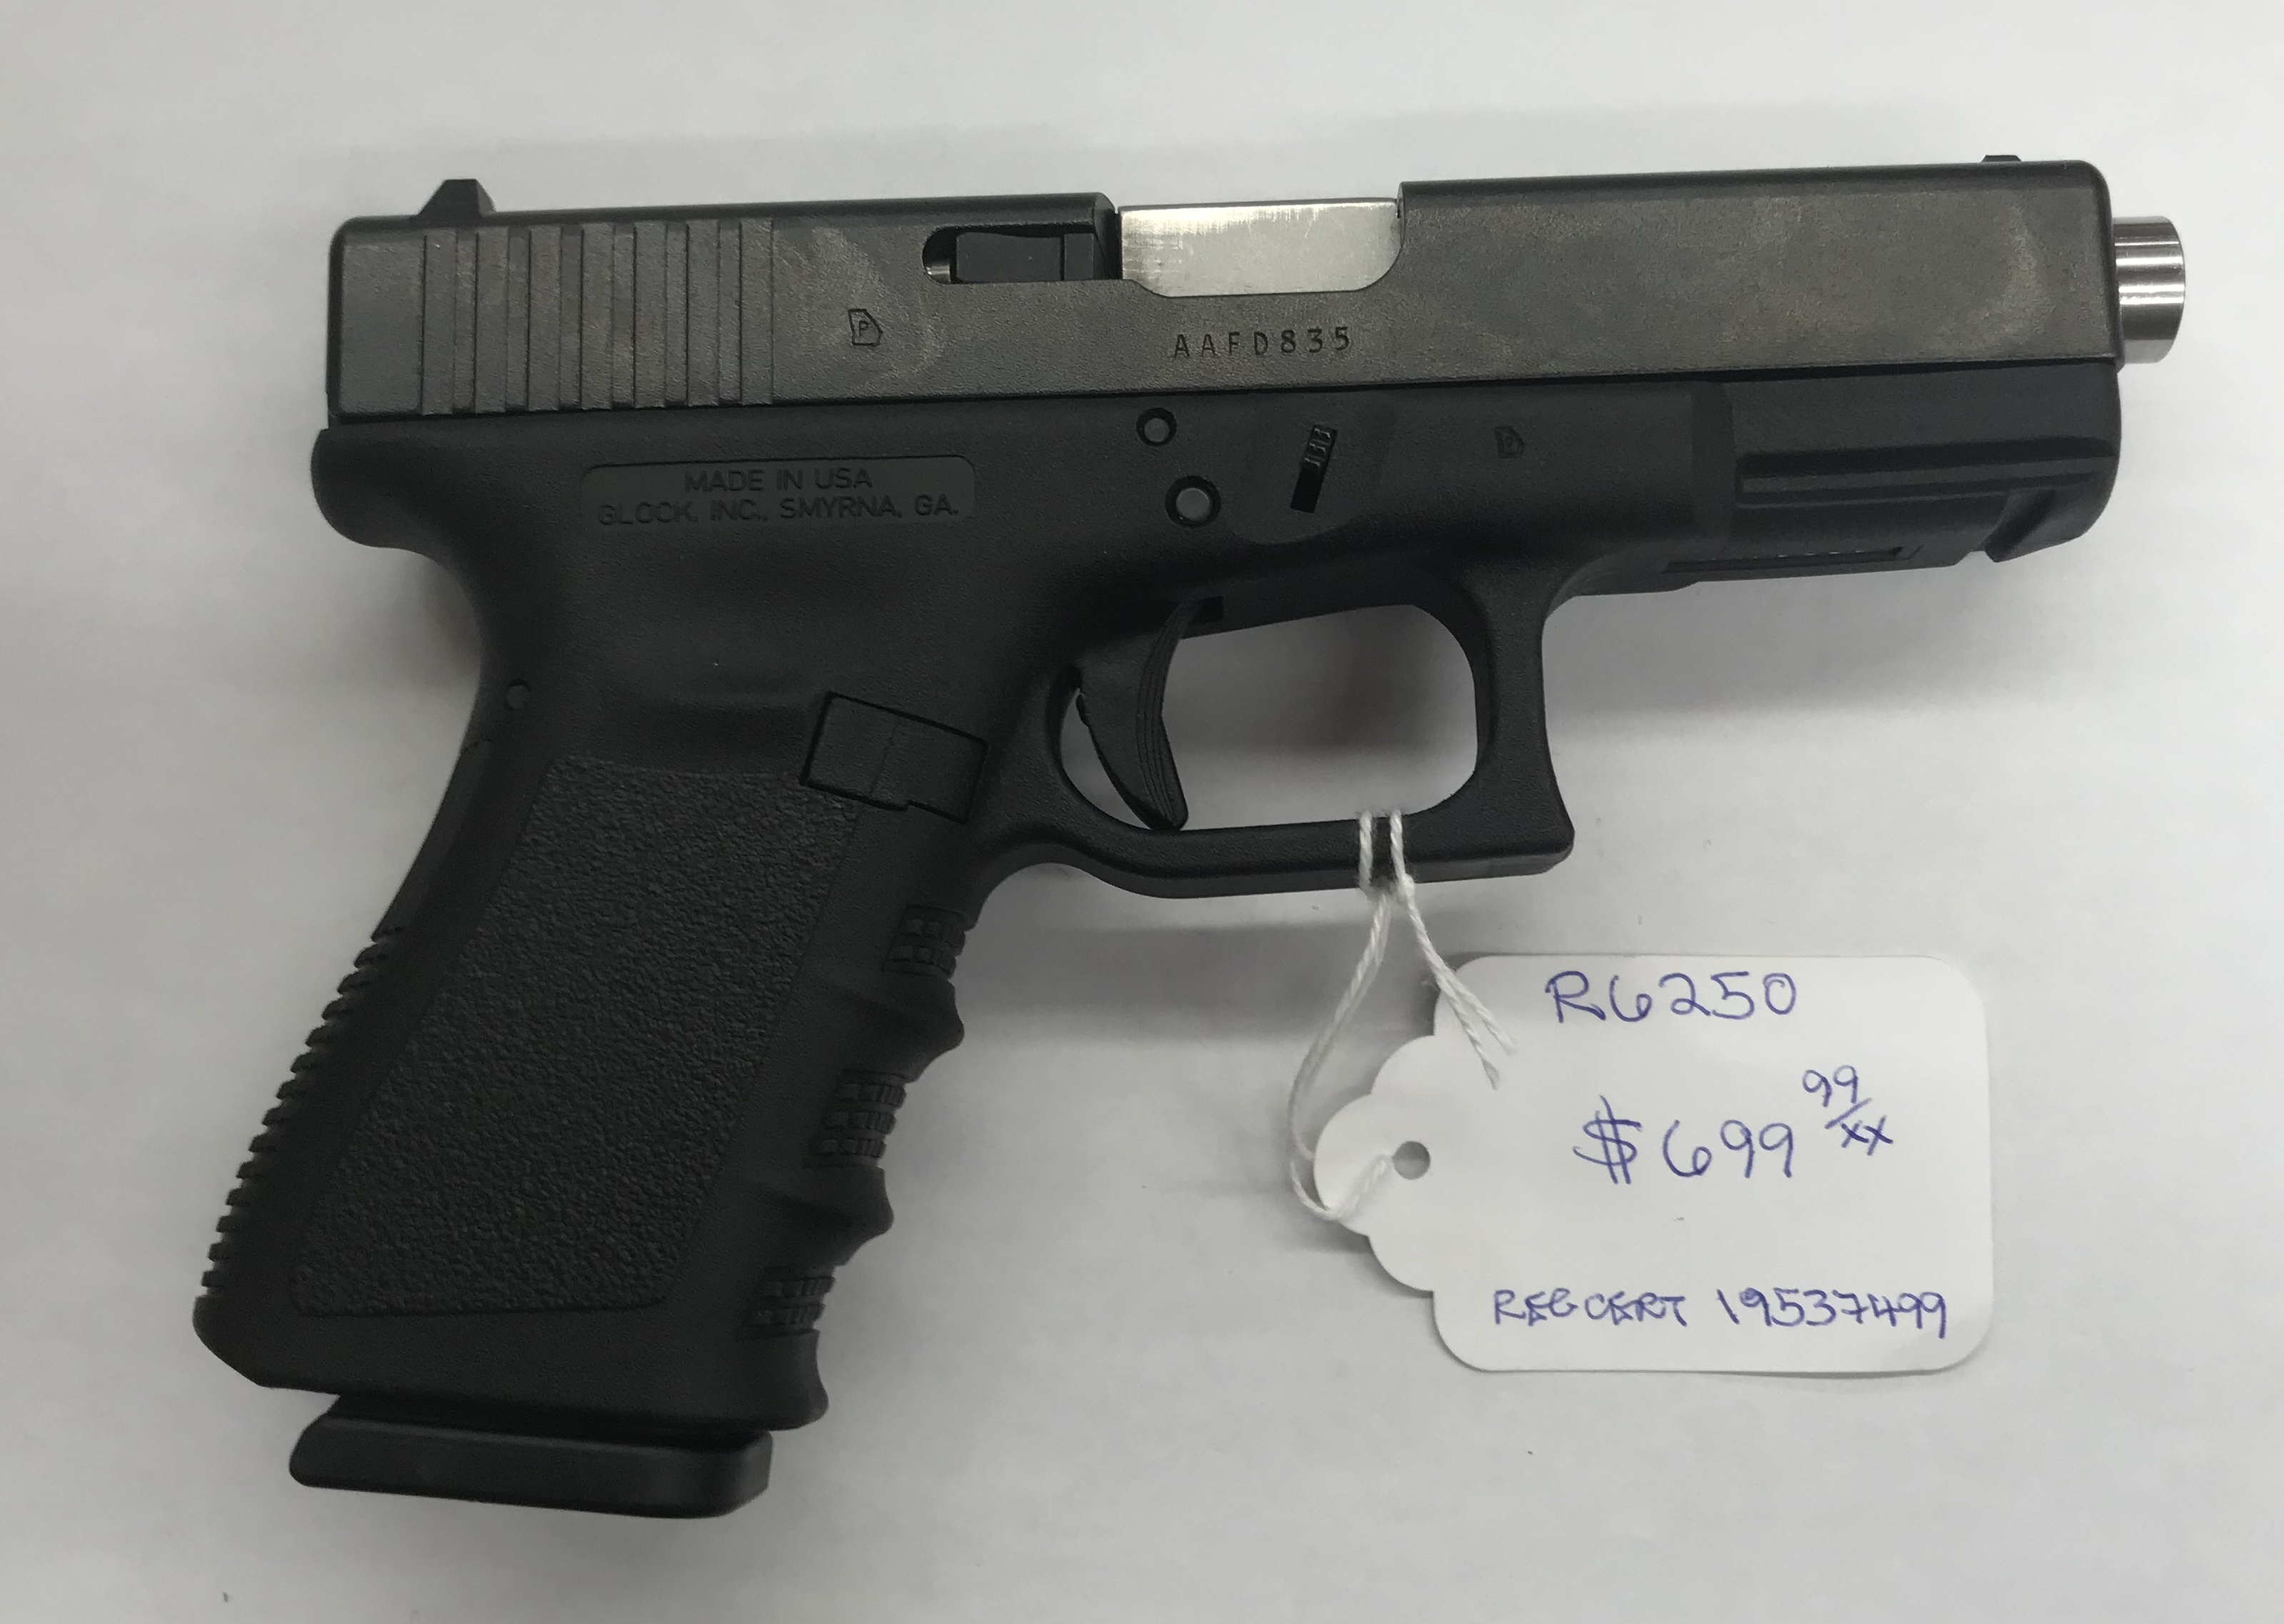 GLOCK MODEL 19 GEN 3 9MM SIEMI-AUTOMATIC PISTOL R6250